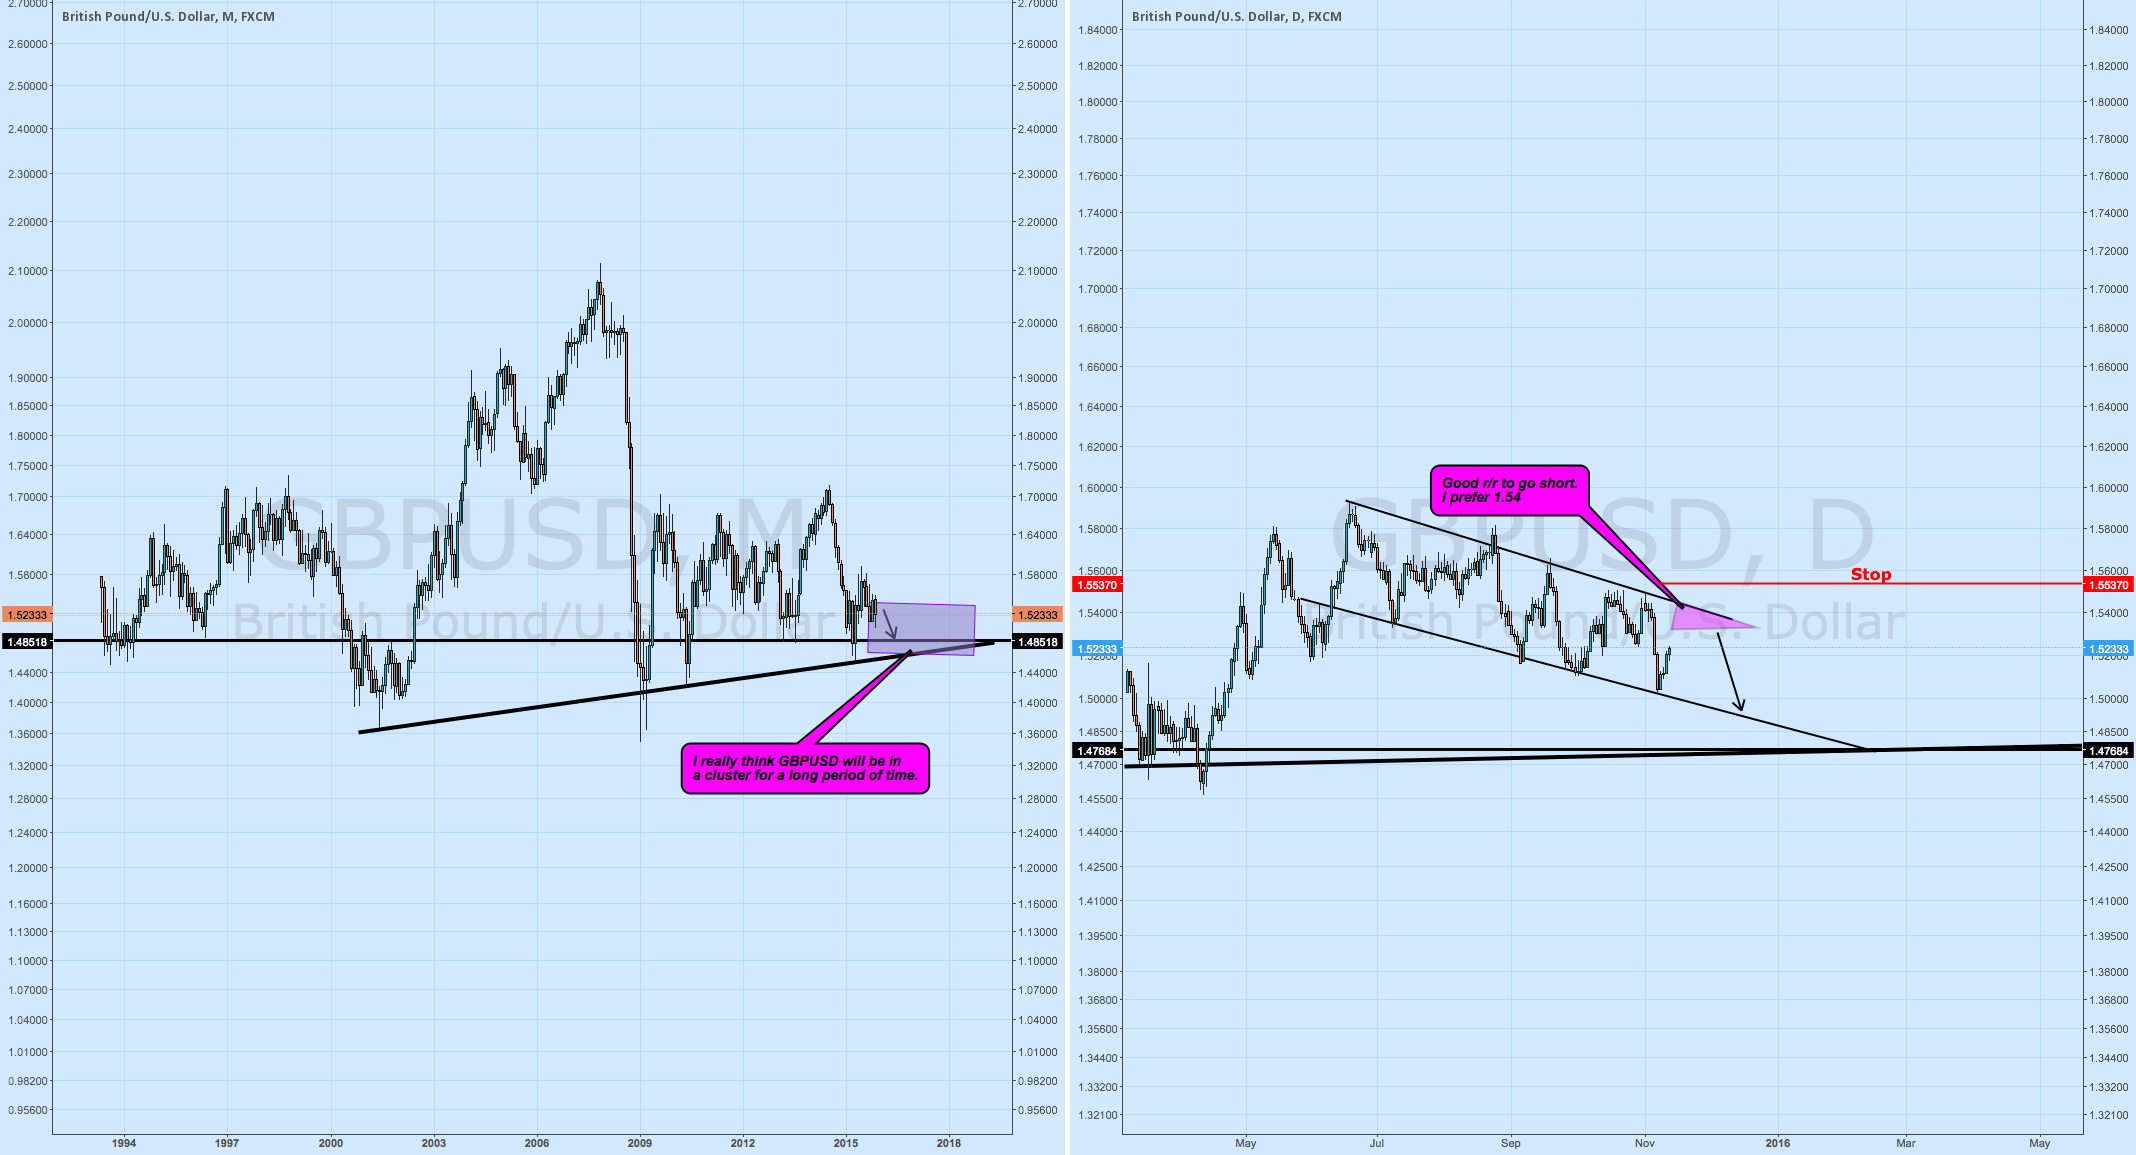 GBPUSD may present a great R/R to go short on daily